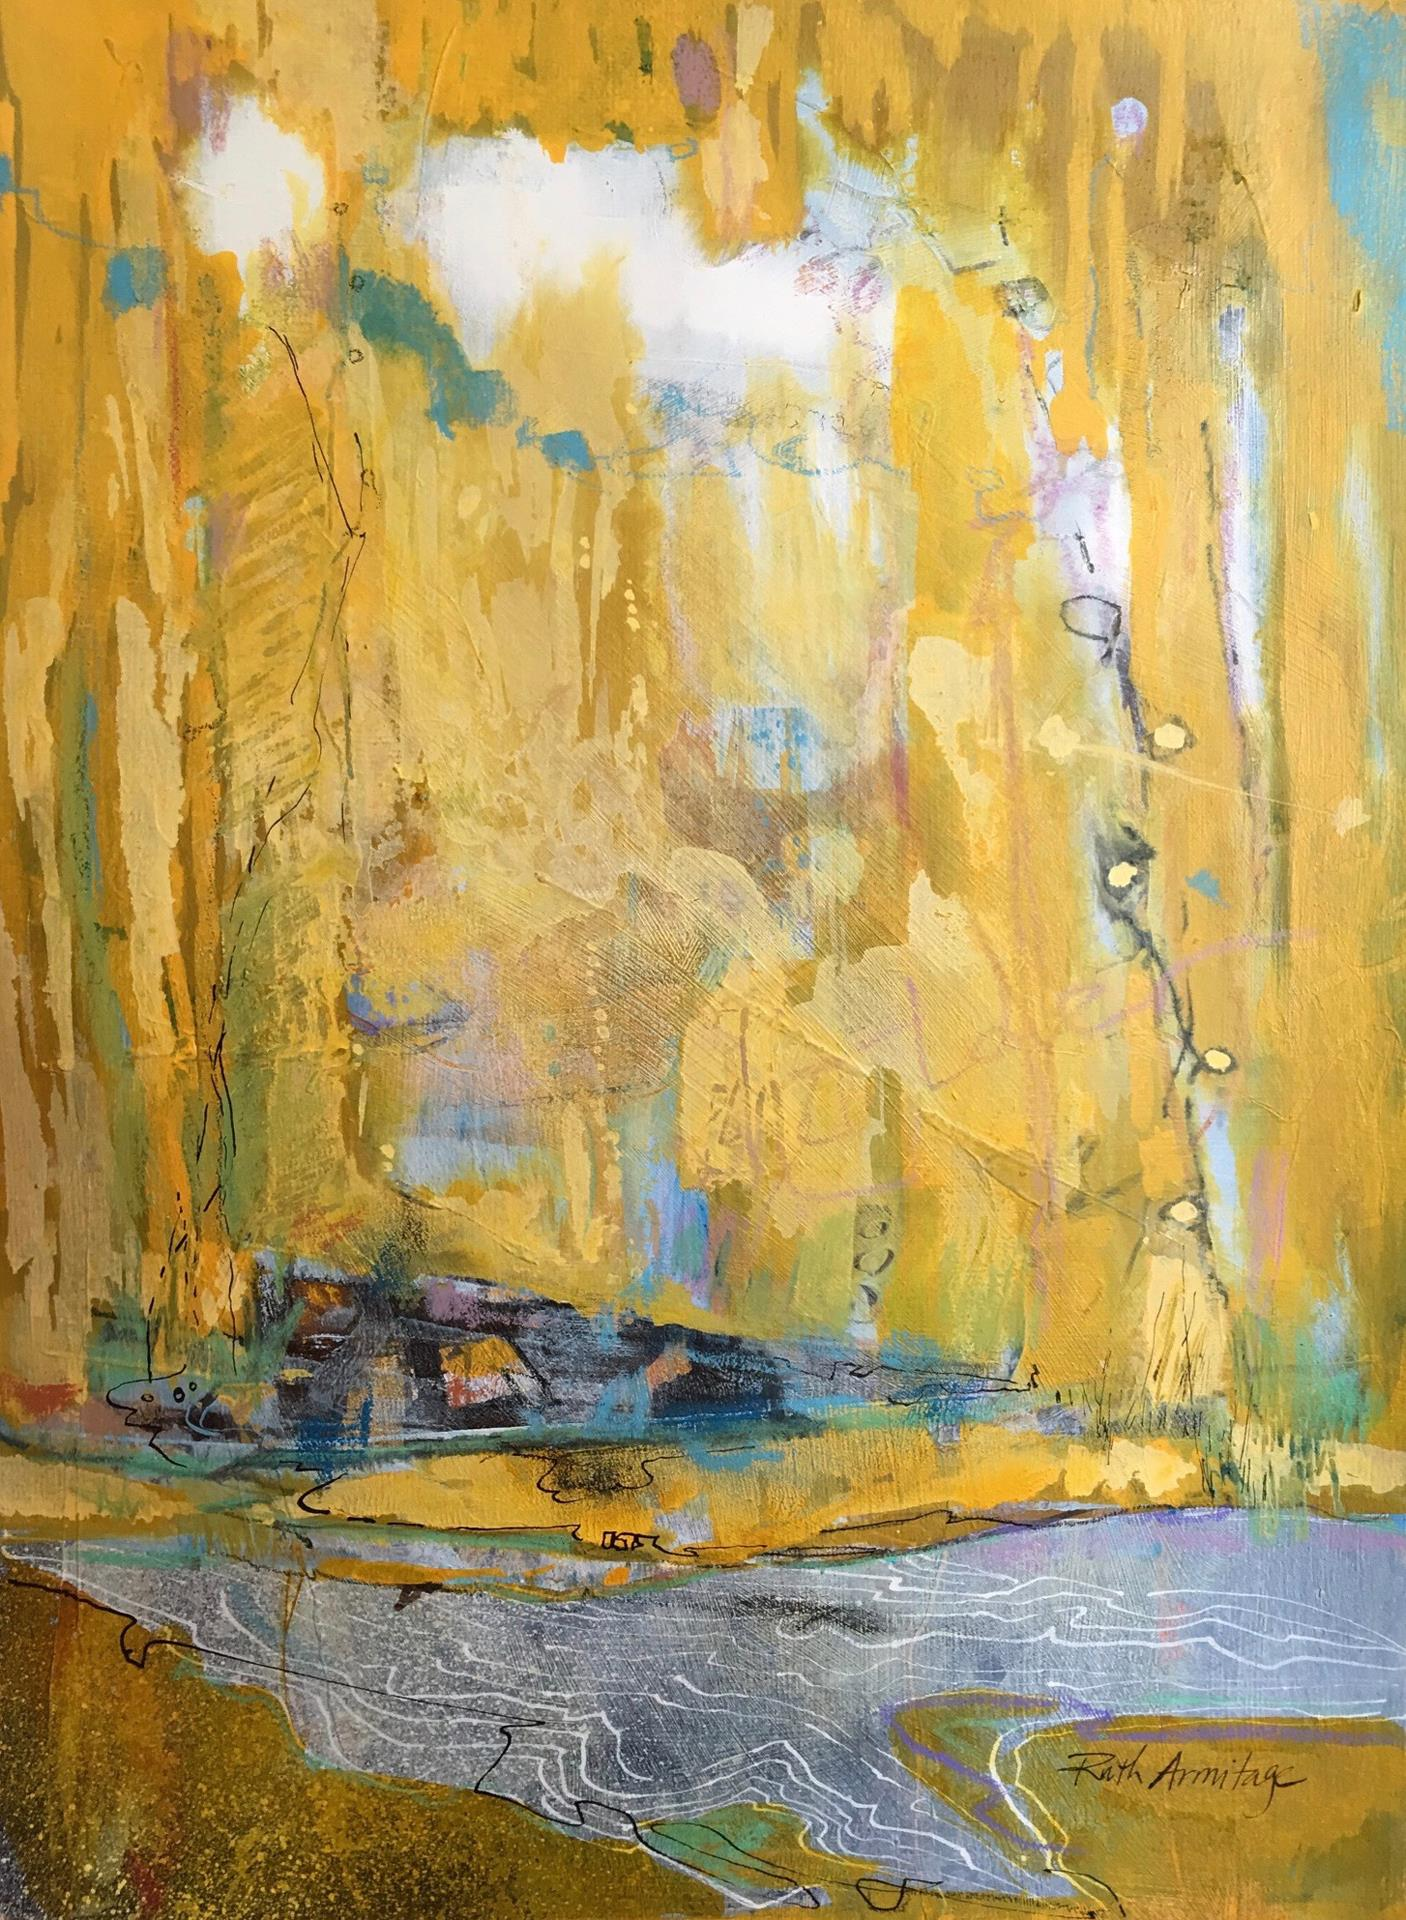 Ruth Armitage, Golden Shore